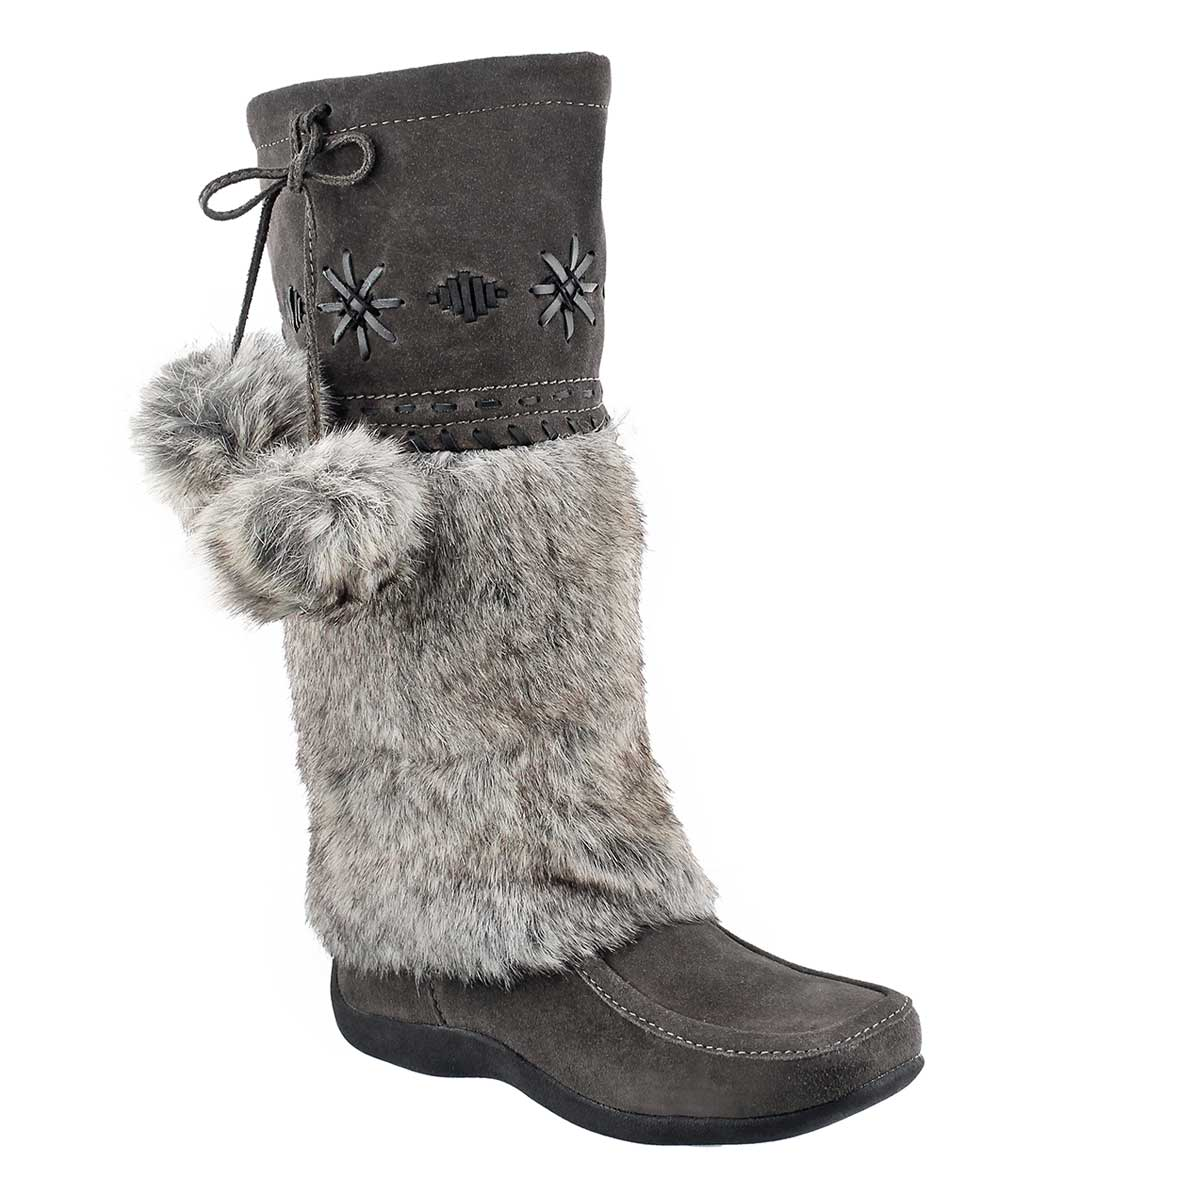 Women's CANDY 4 grey suede mukluks